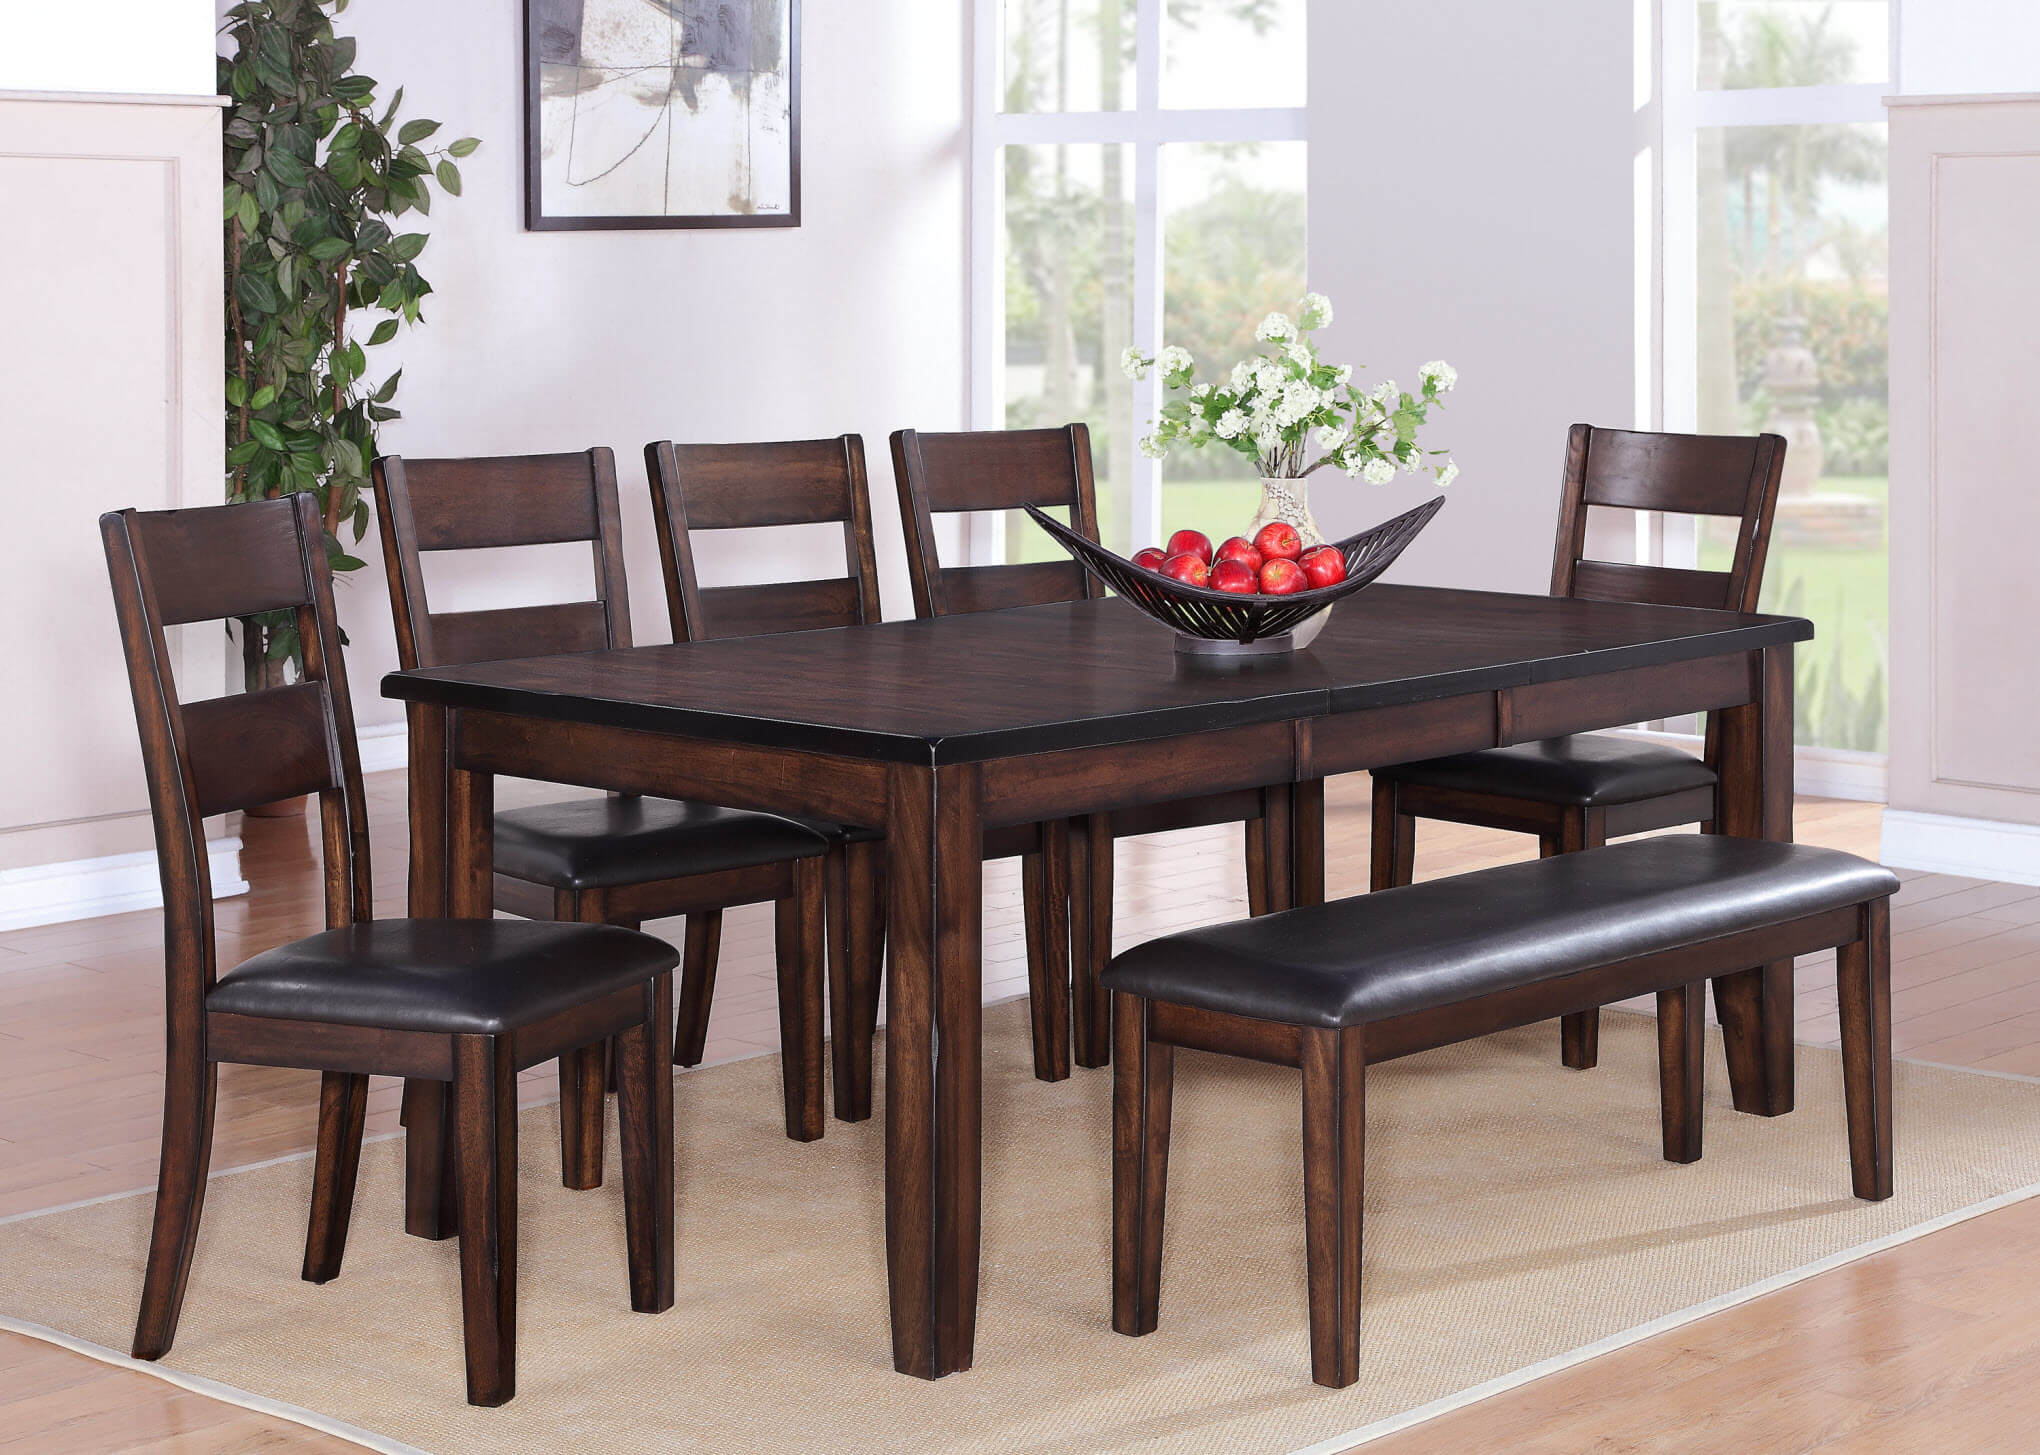 2360 Maldives 7 Piece Dining Set With Bench By Crown Mark